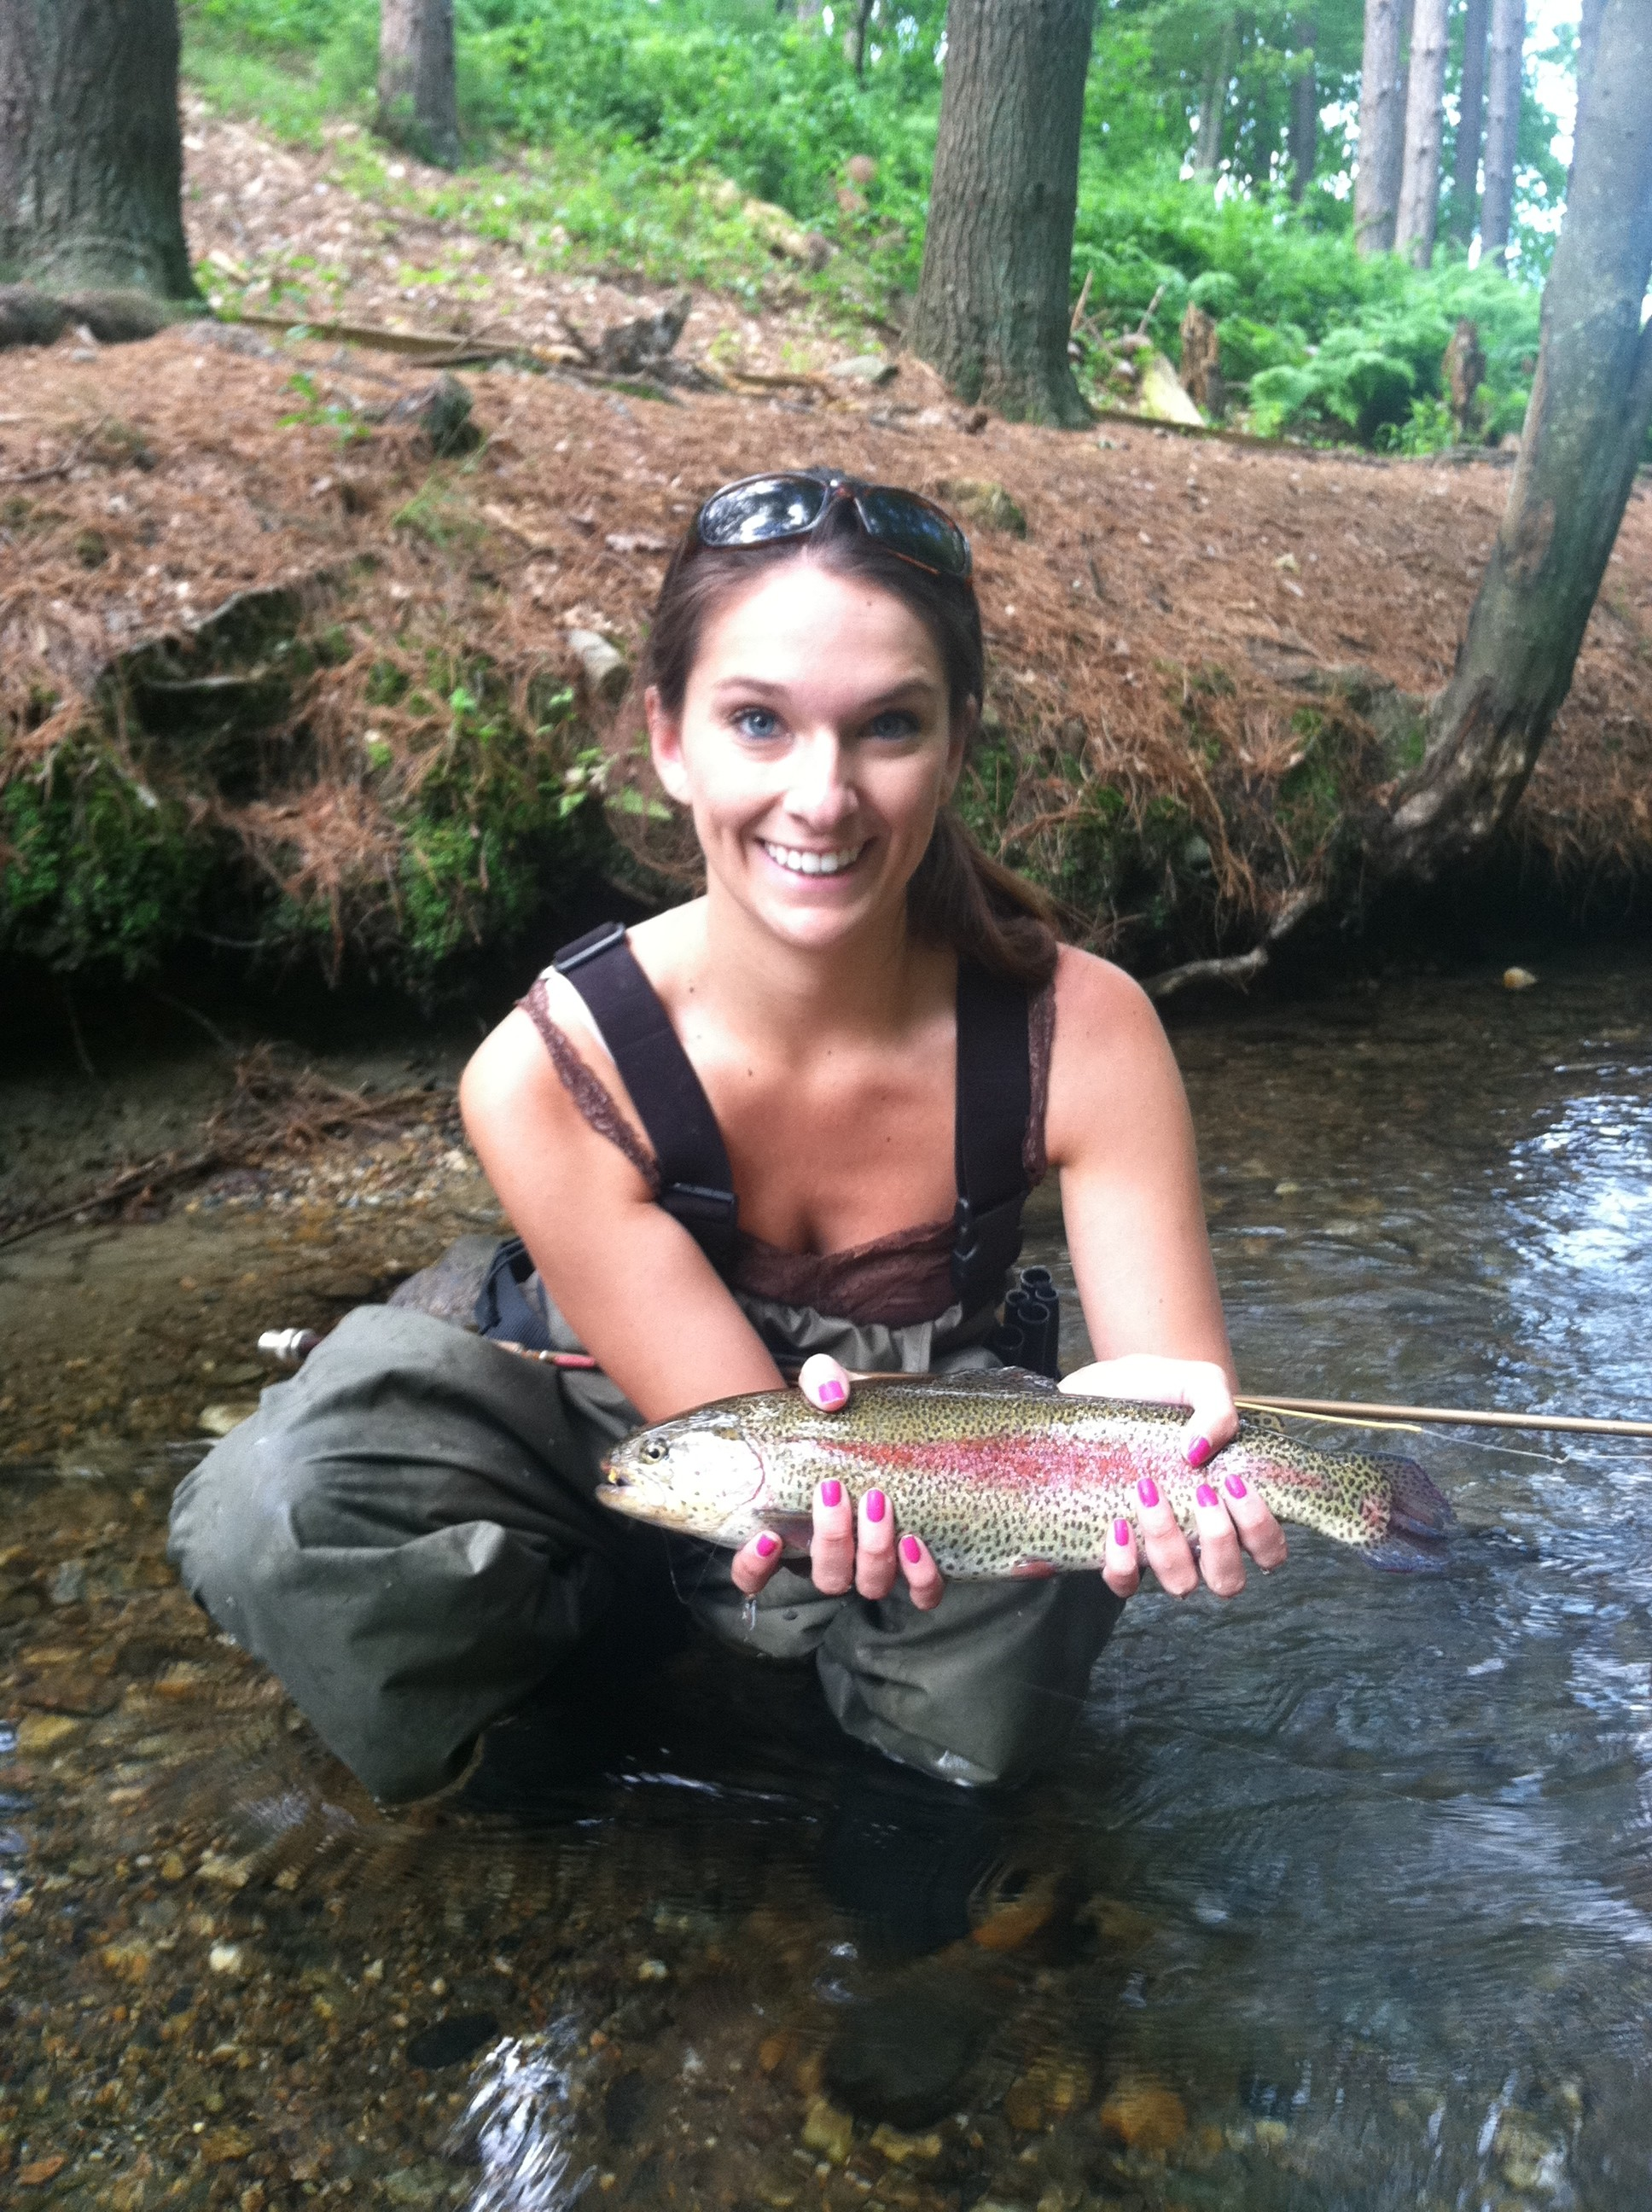 New England's Guide Service Llc.: Guided Fishing Trip